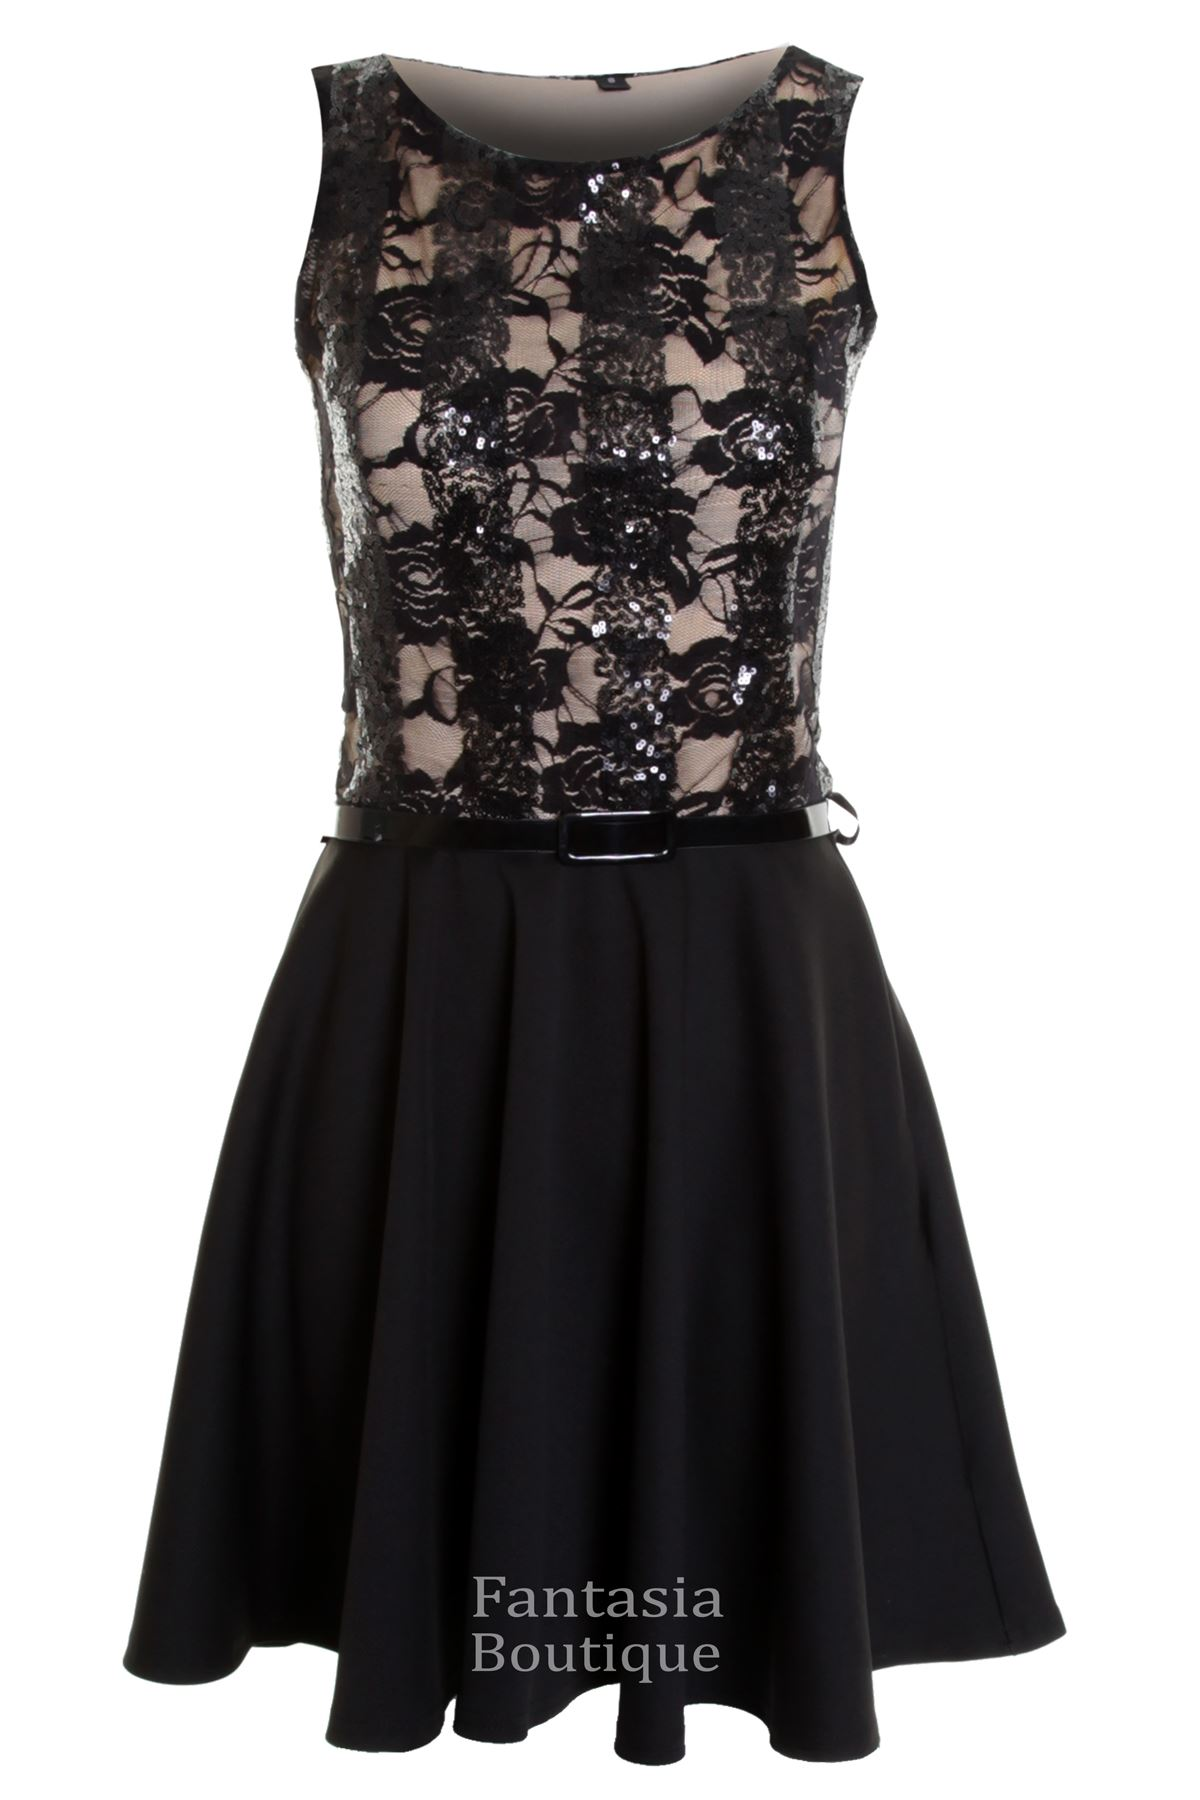 280a351e8d ... Lined Floral Lace Women s Skater Dress Sequins US 4. About this  product. Picture 1 of 3  Picture 2 of 3 ...